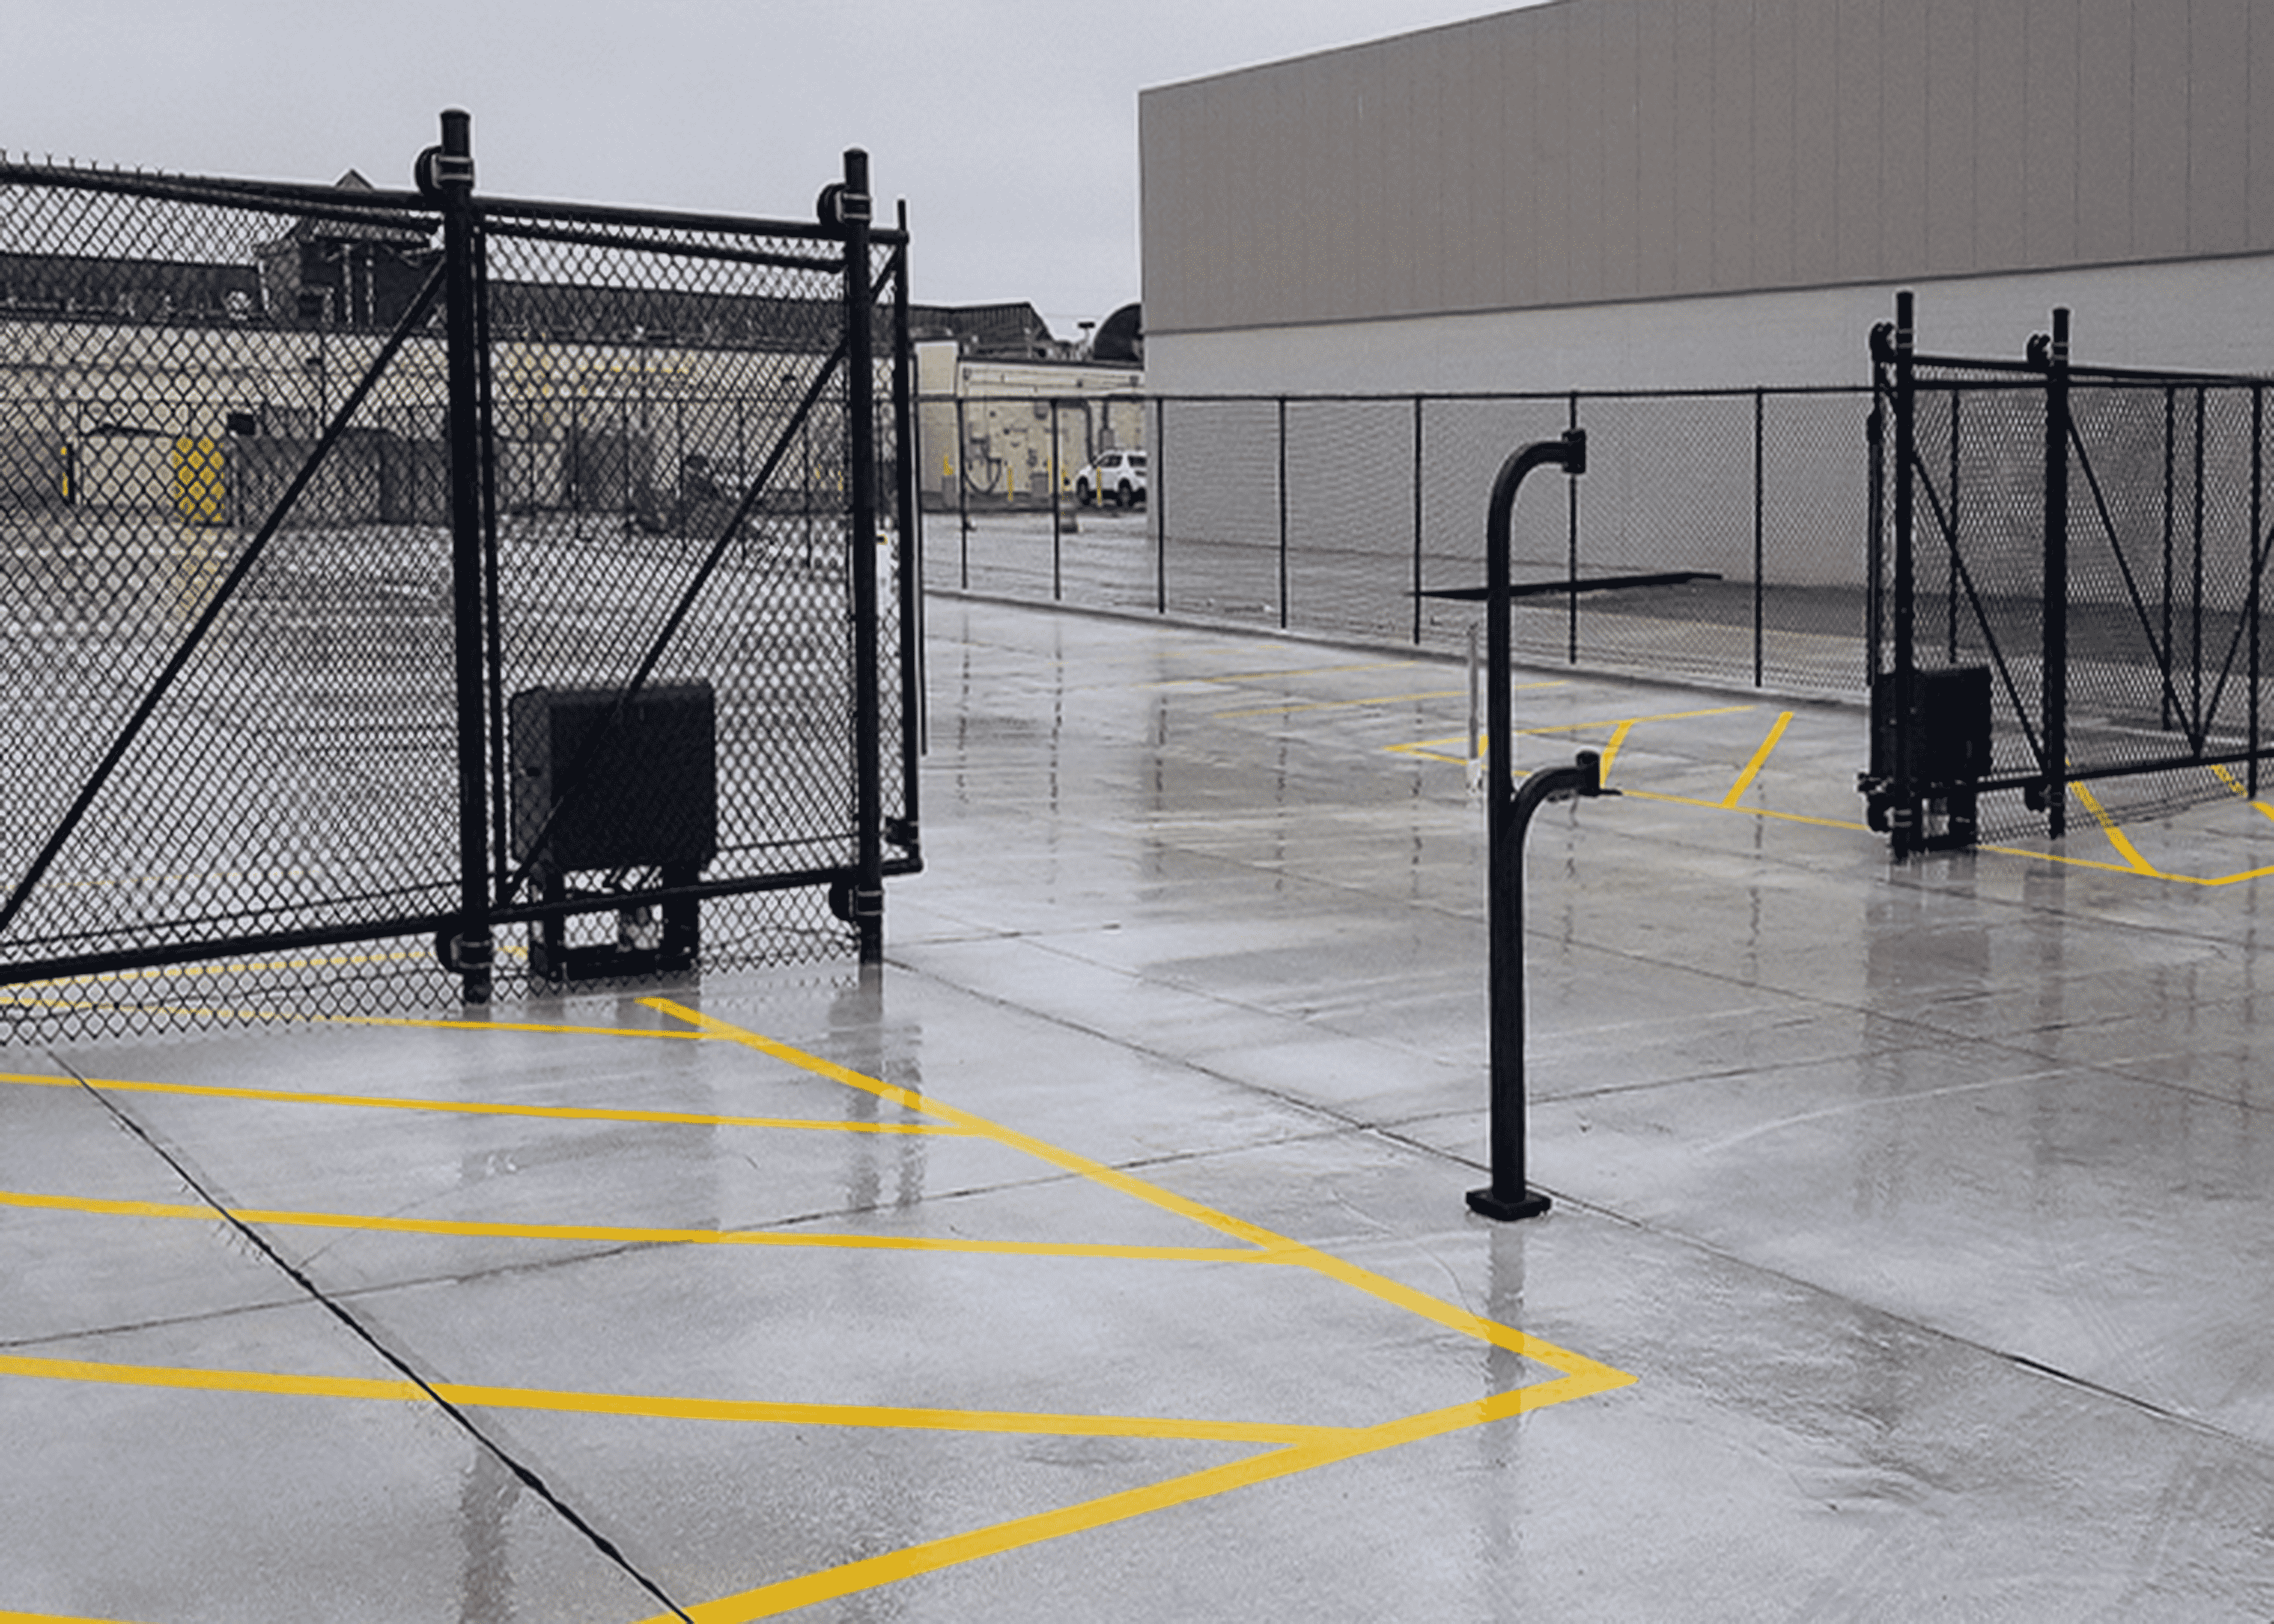 Commercial gate and access control system (electric gate operator) at Van der Graaf